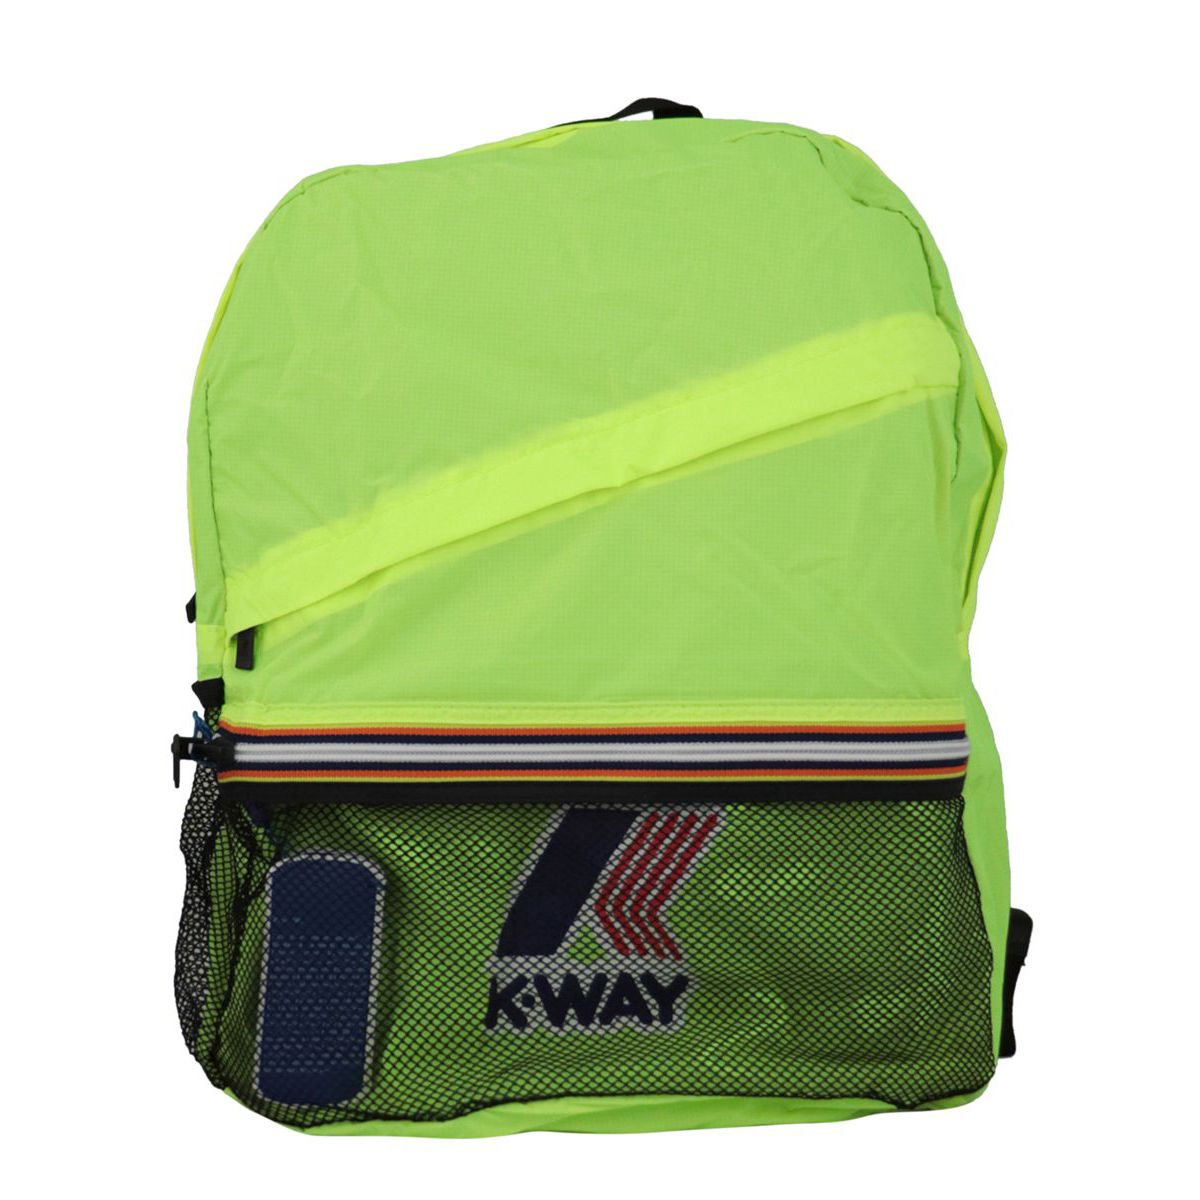 Le Vrai 3.0 Francois backpack Yellow K-Way